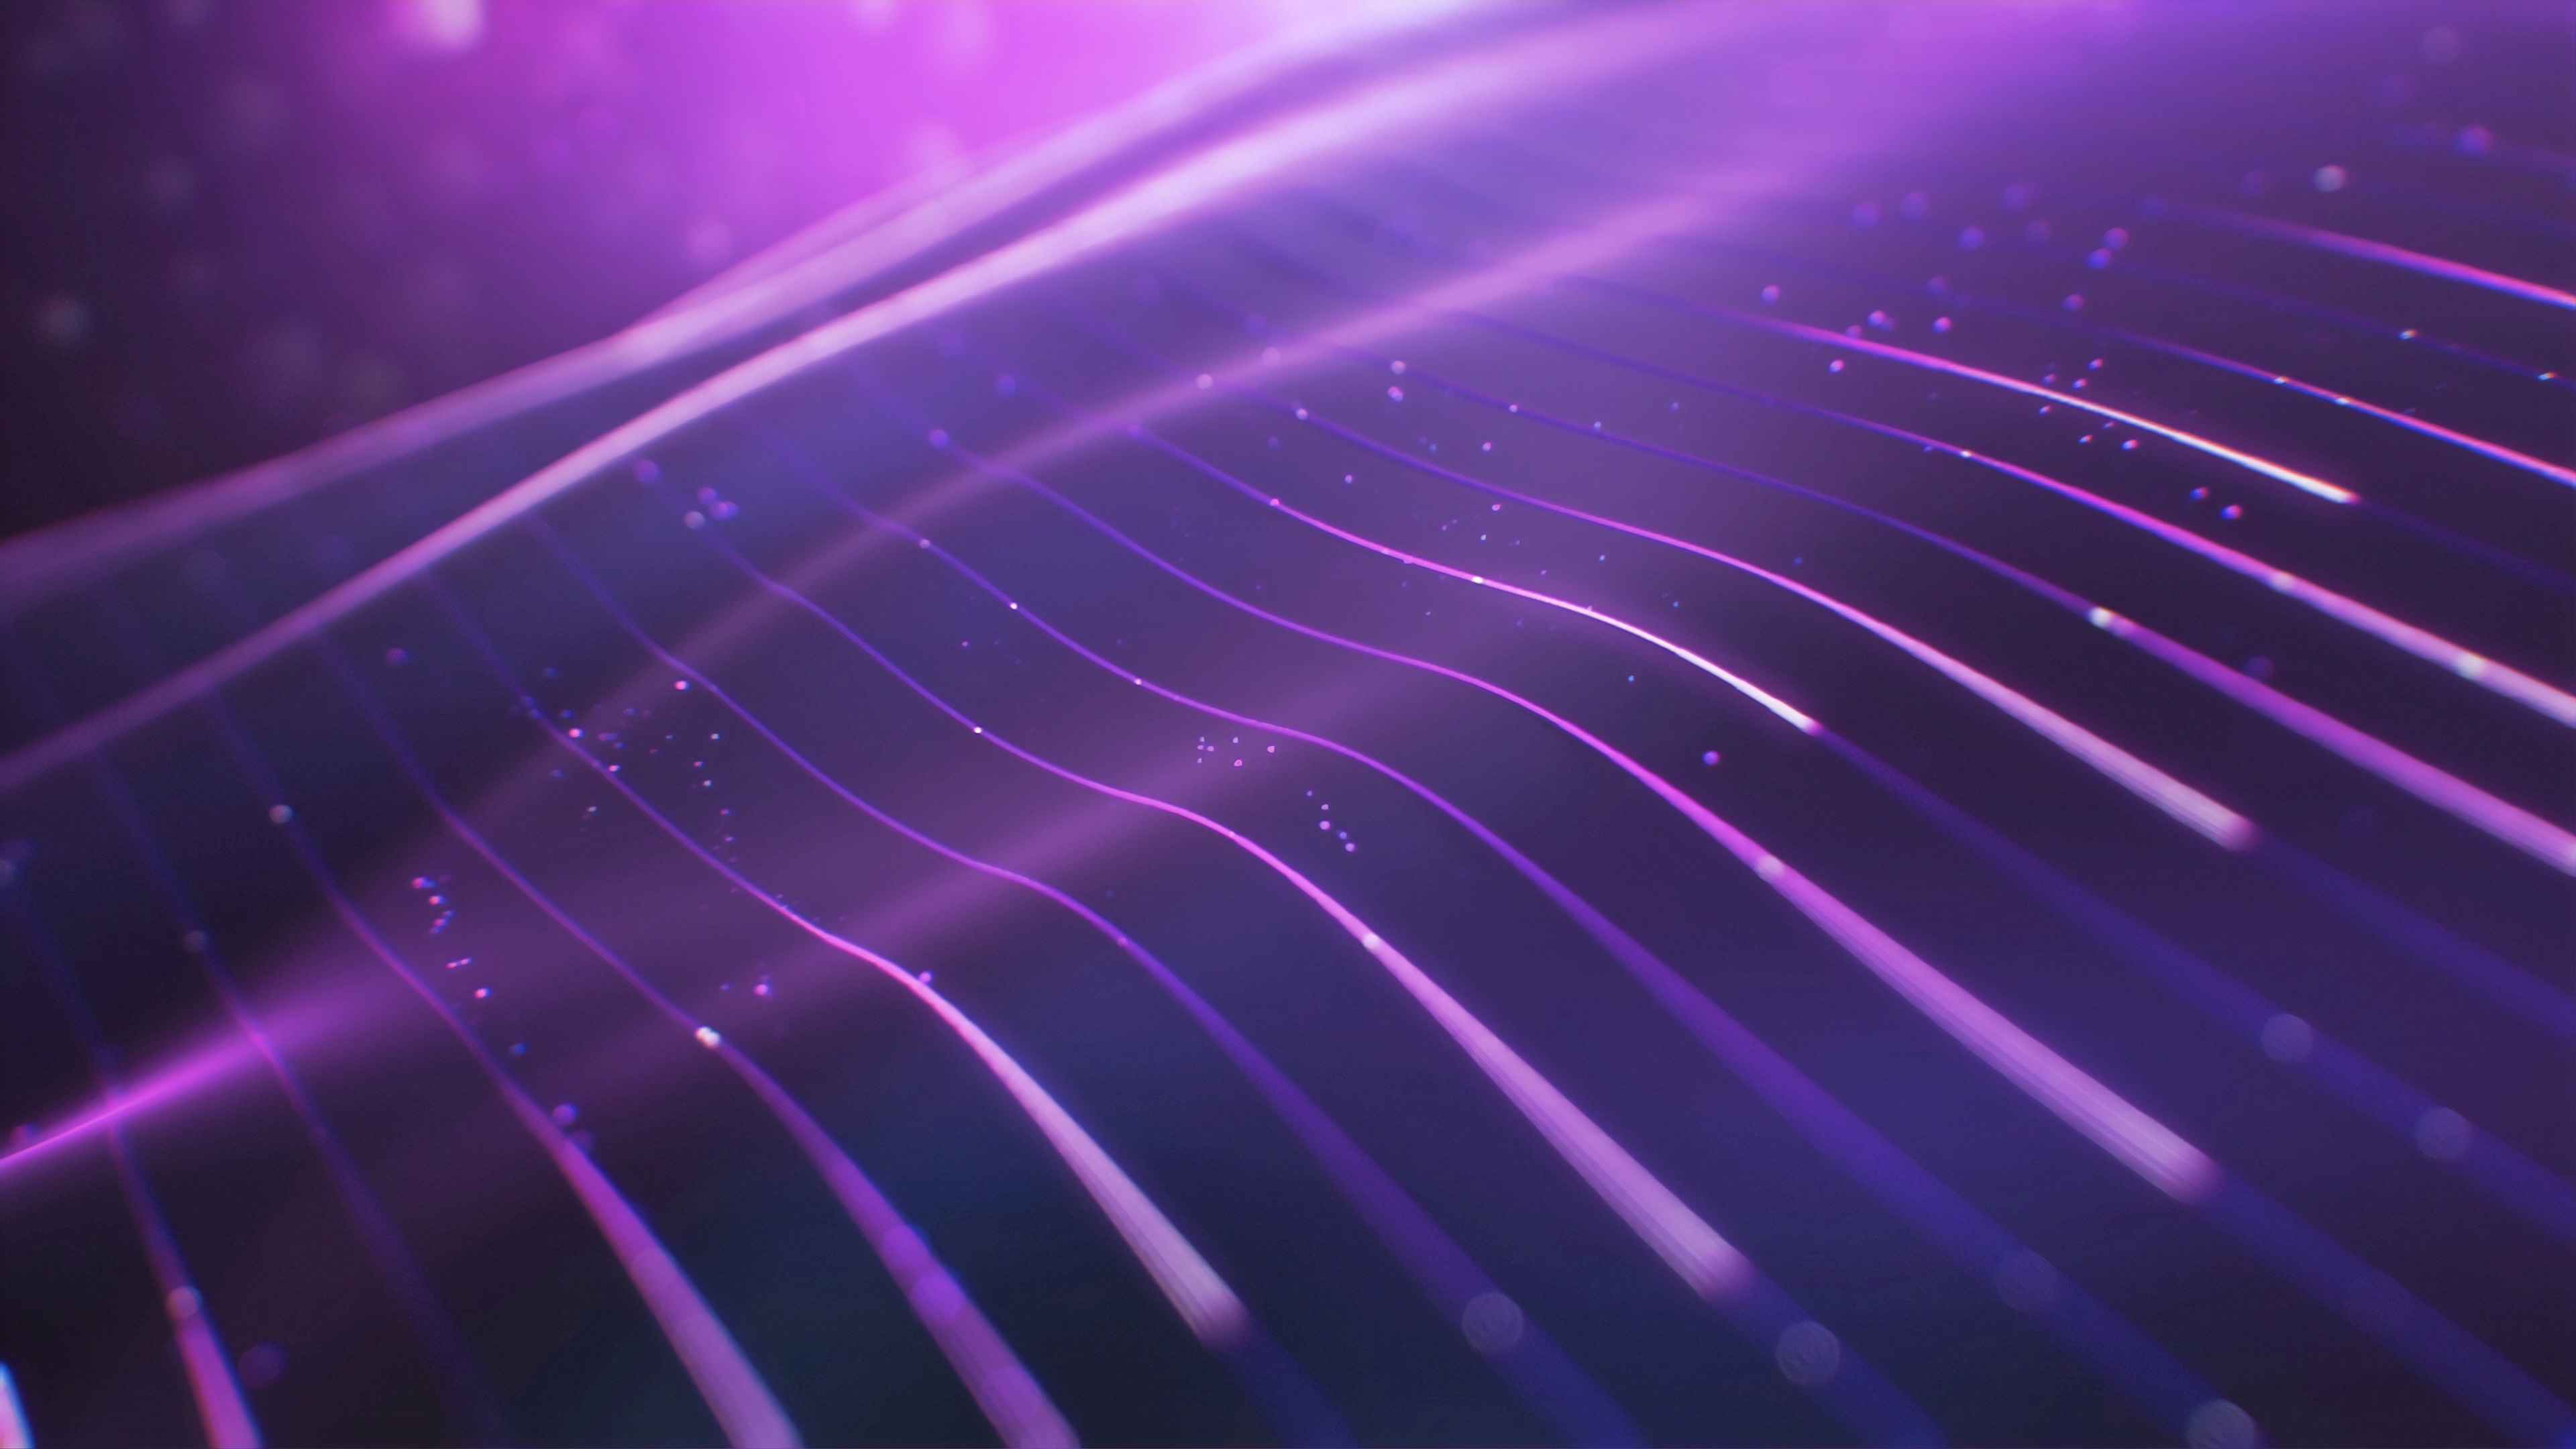 purple lines digital abstract 1563221462 - Purple Lines Digital Abstract - lines wallpapers, hd-wallpapers, digital art wallpapers, abstract wallpapers, 4k-wallpapers